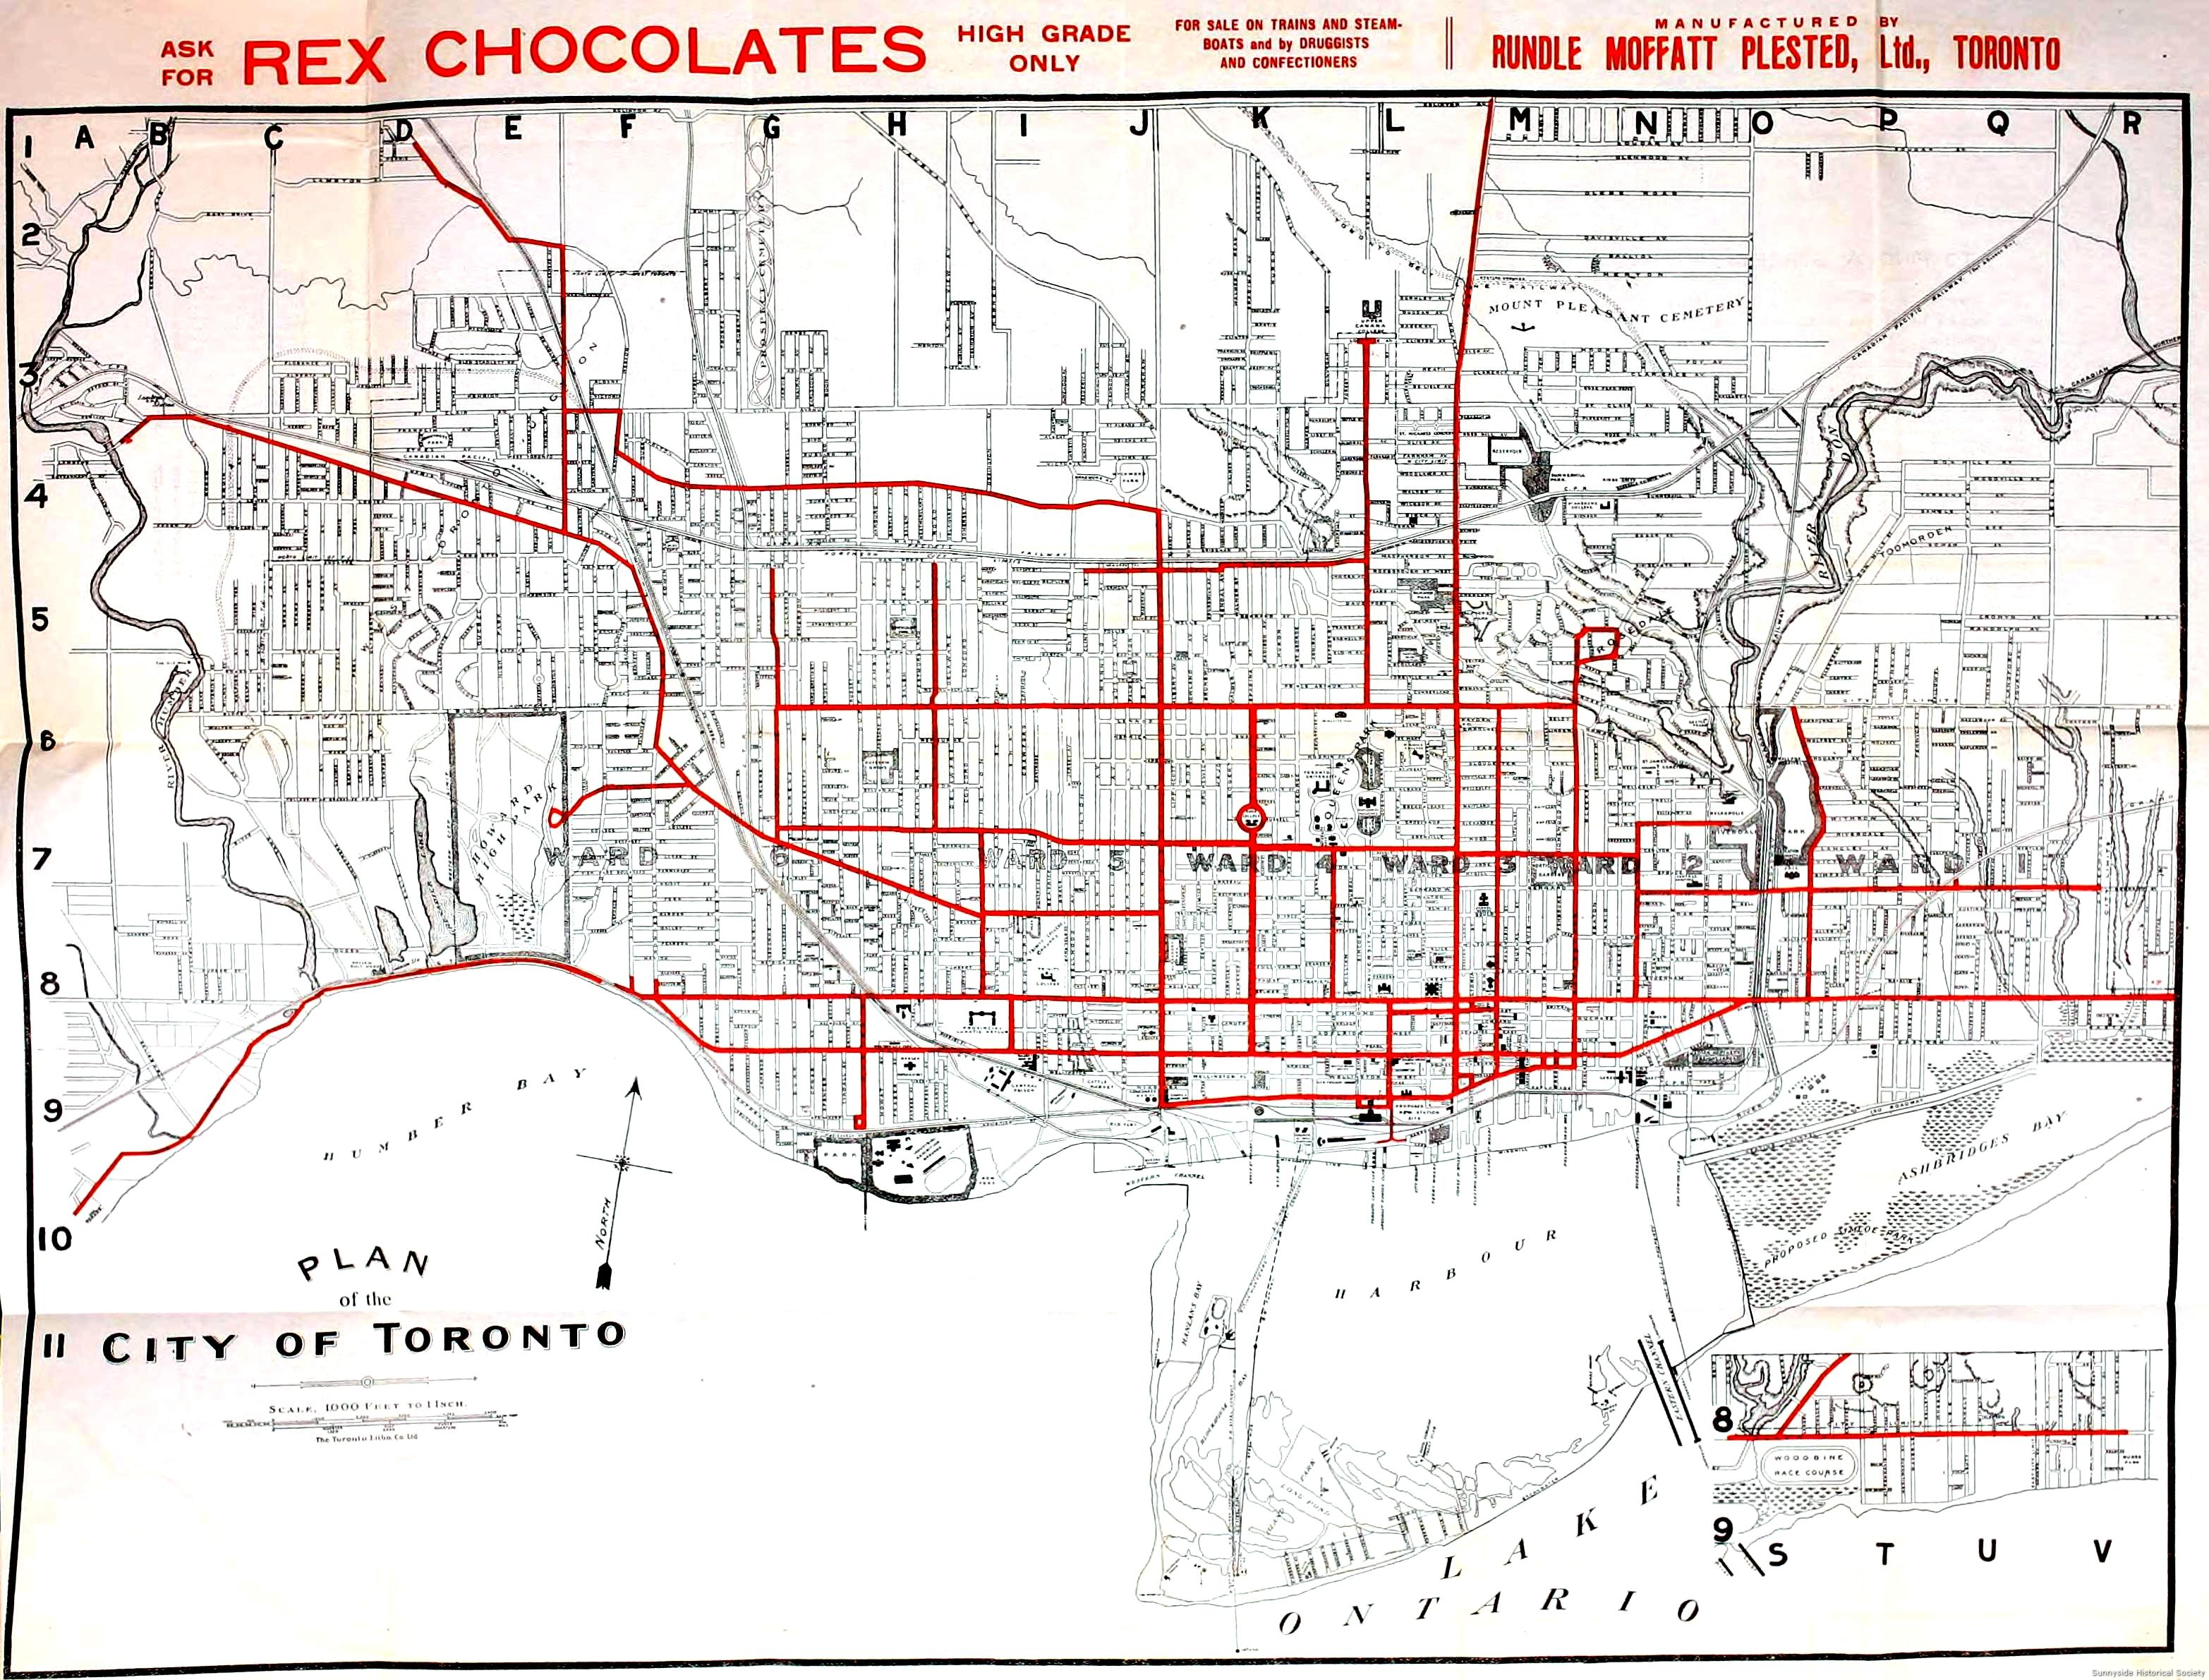 1912 Rex Chocolate Map of Toronto